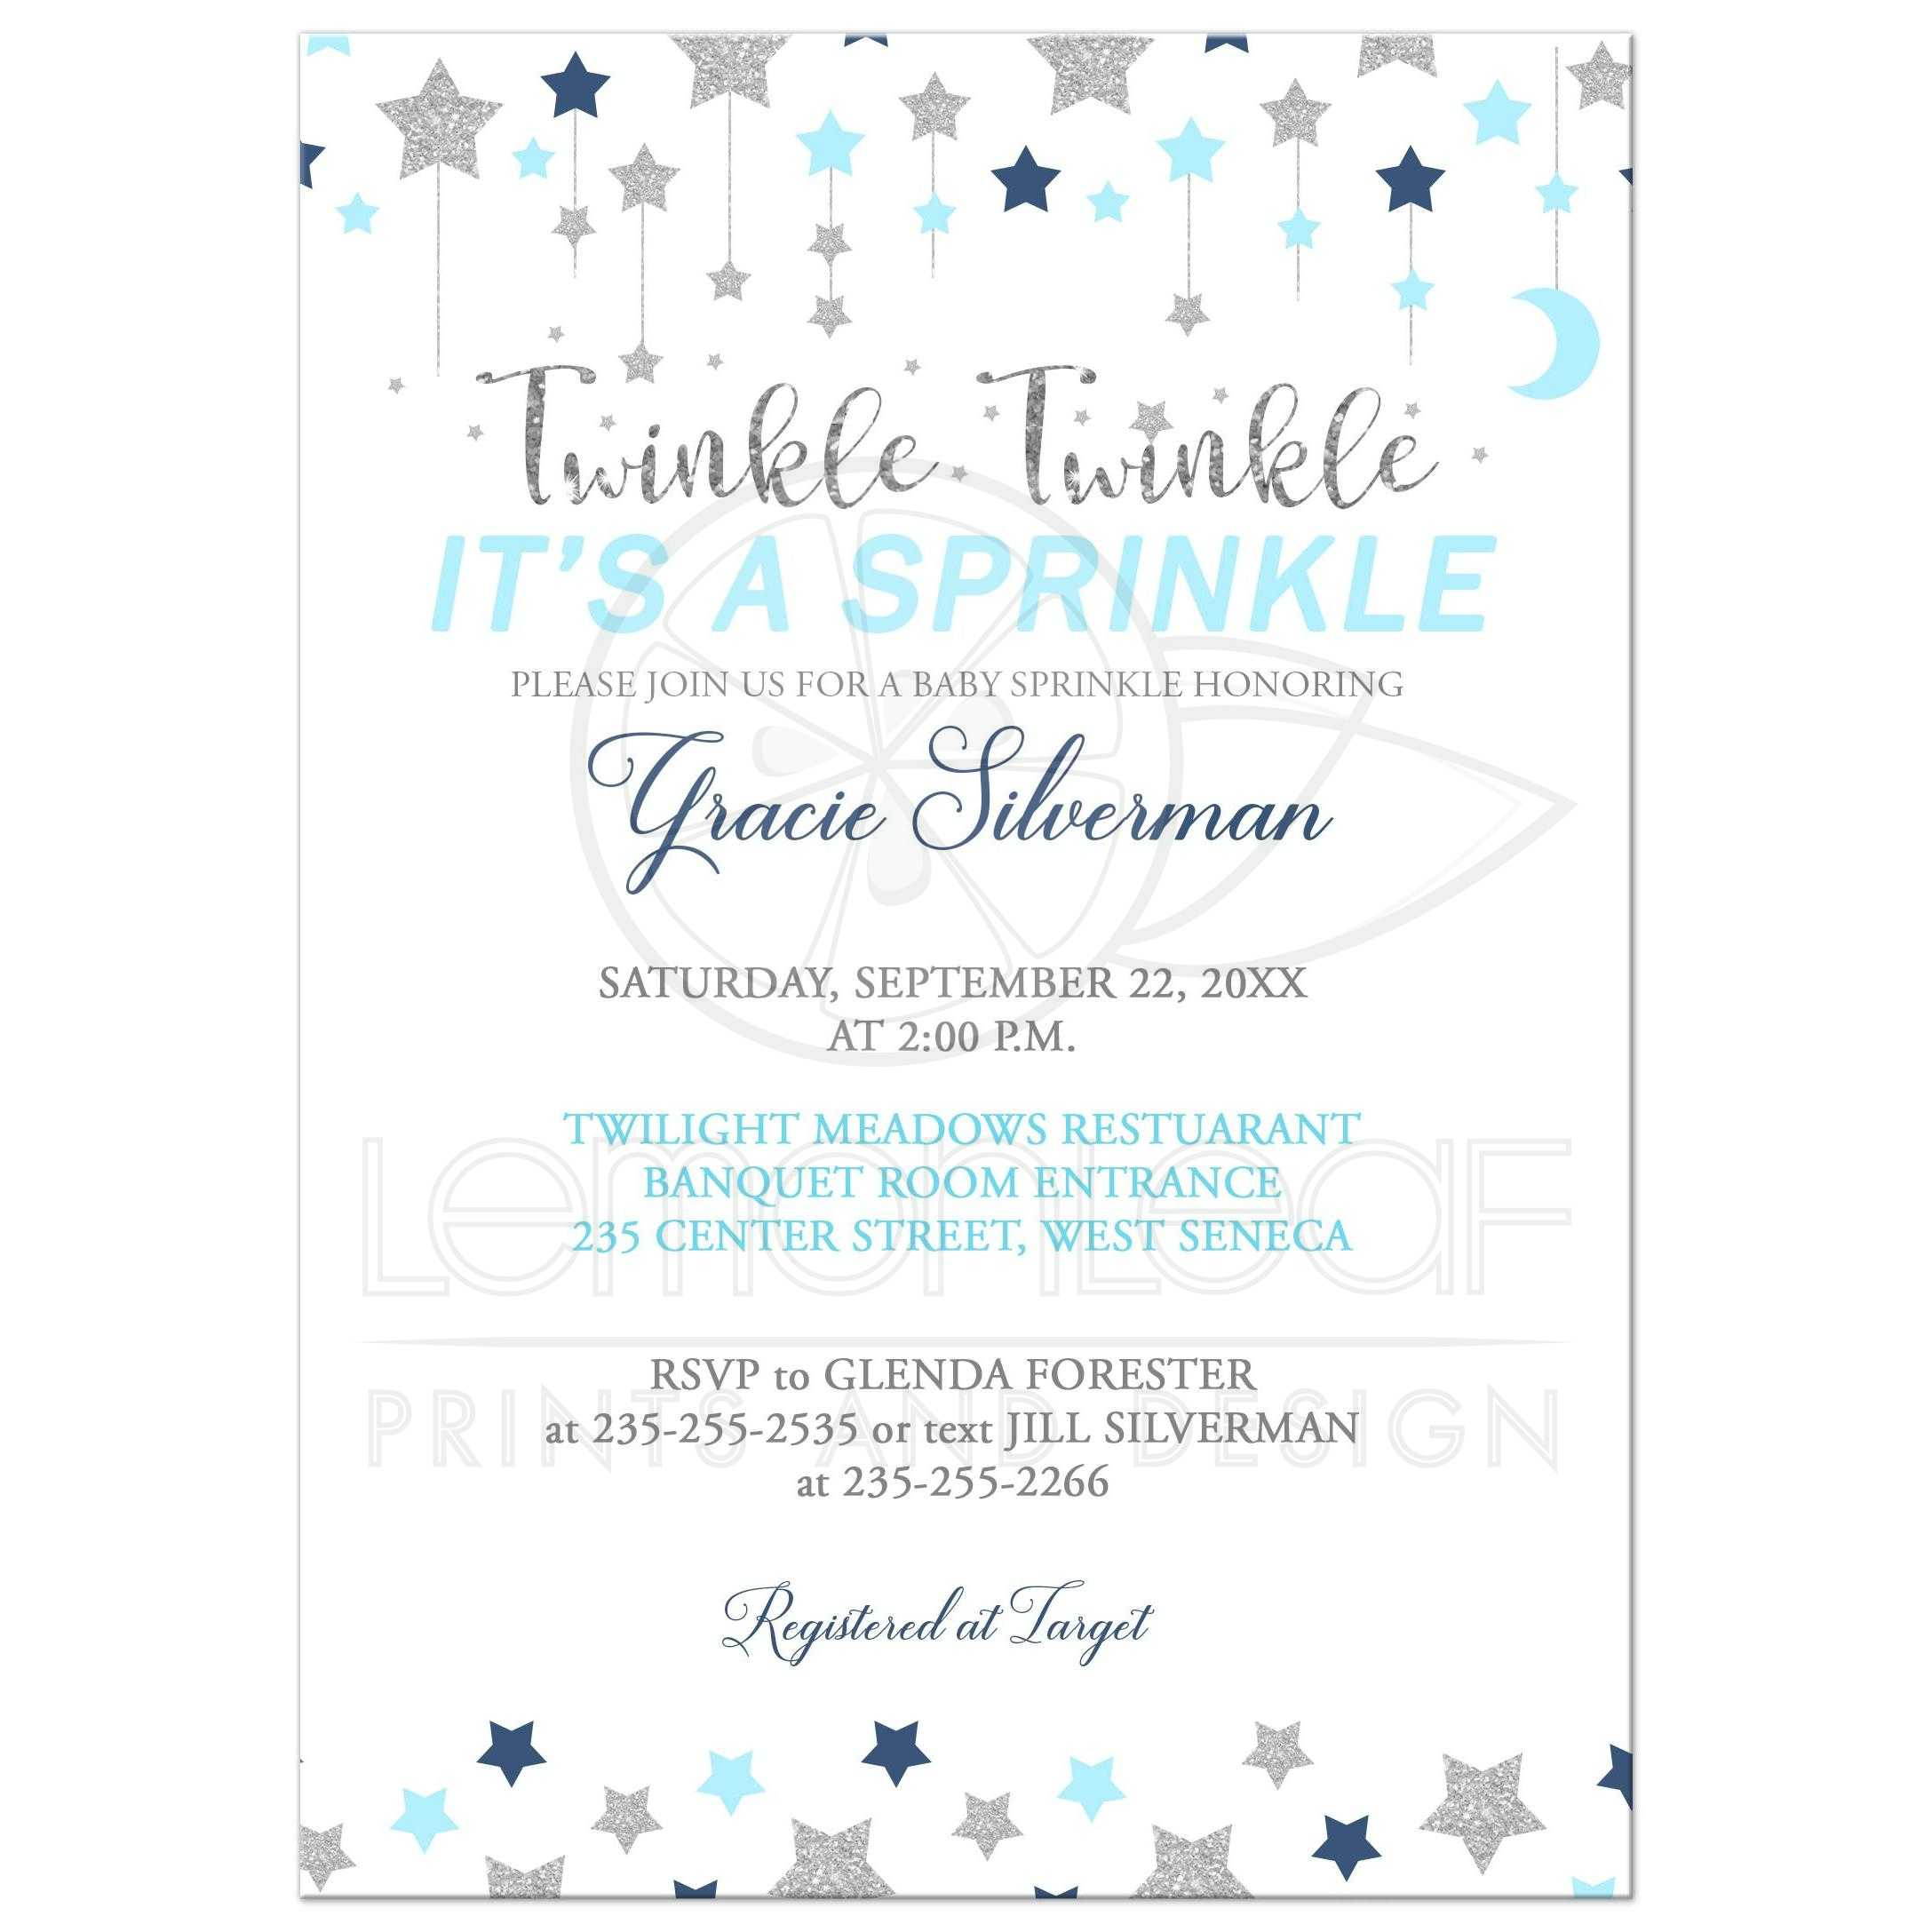 twinkle twinkle baby sprinkle blue and silver boy sprinkle baby shower invitation white